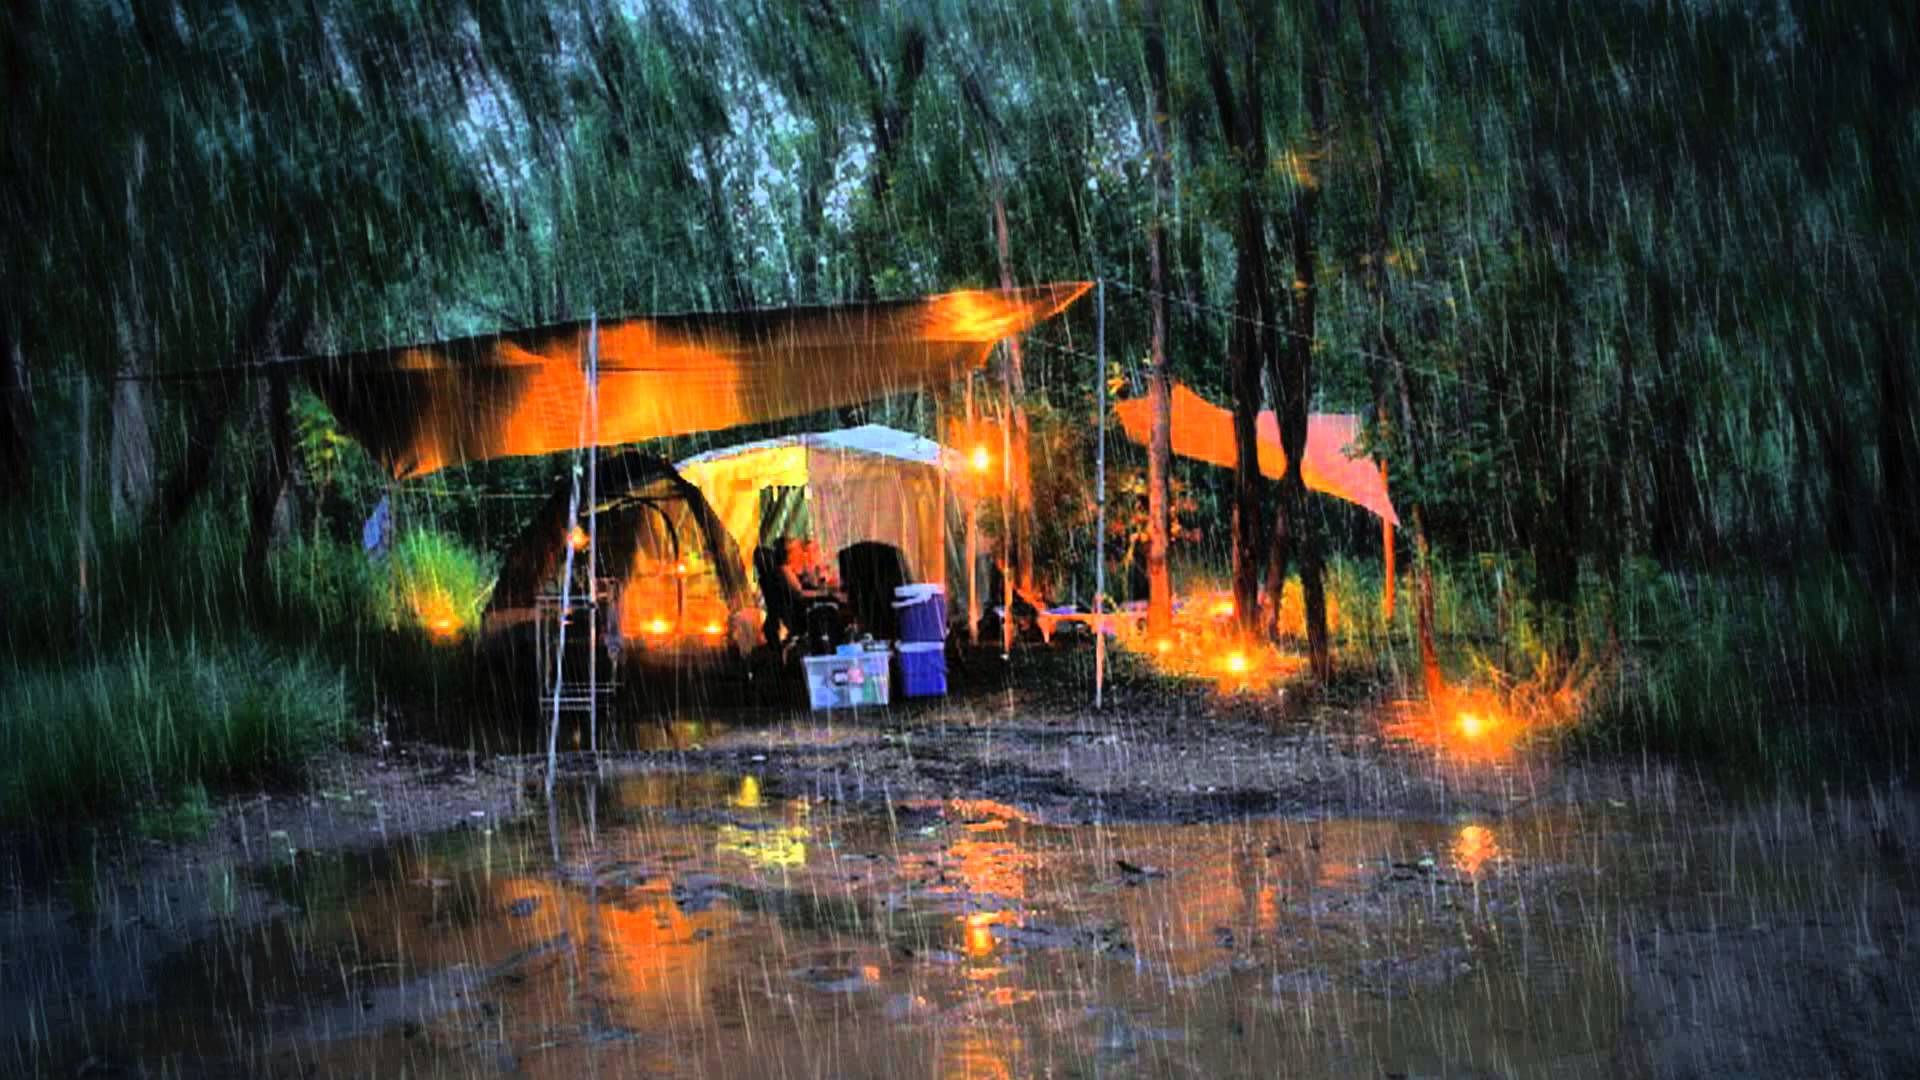 Rainy Camping Trip (MP3) Ambient Noise Rain - YouTube